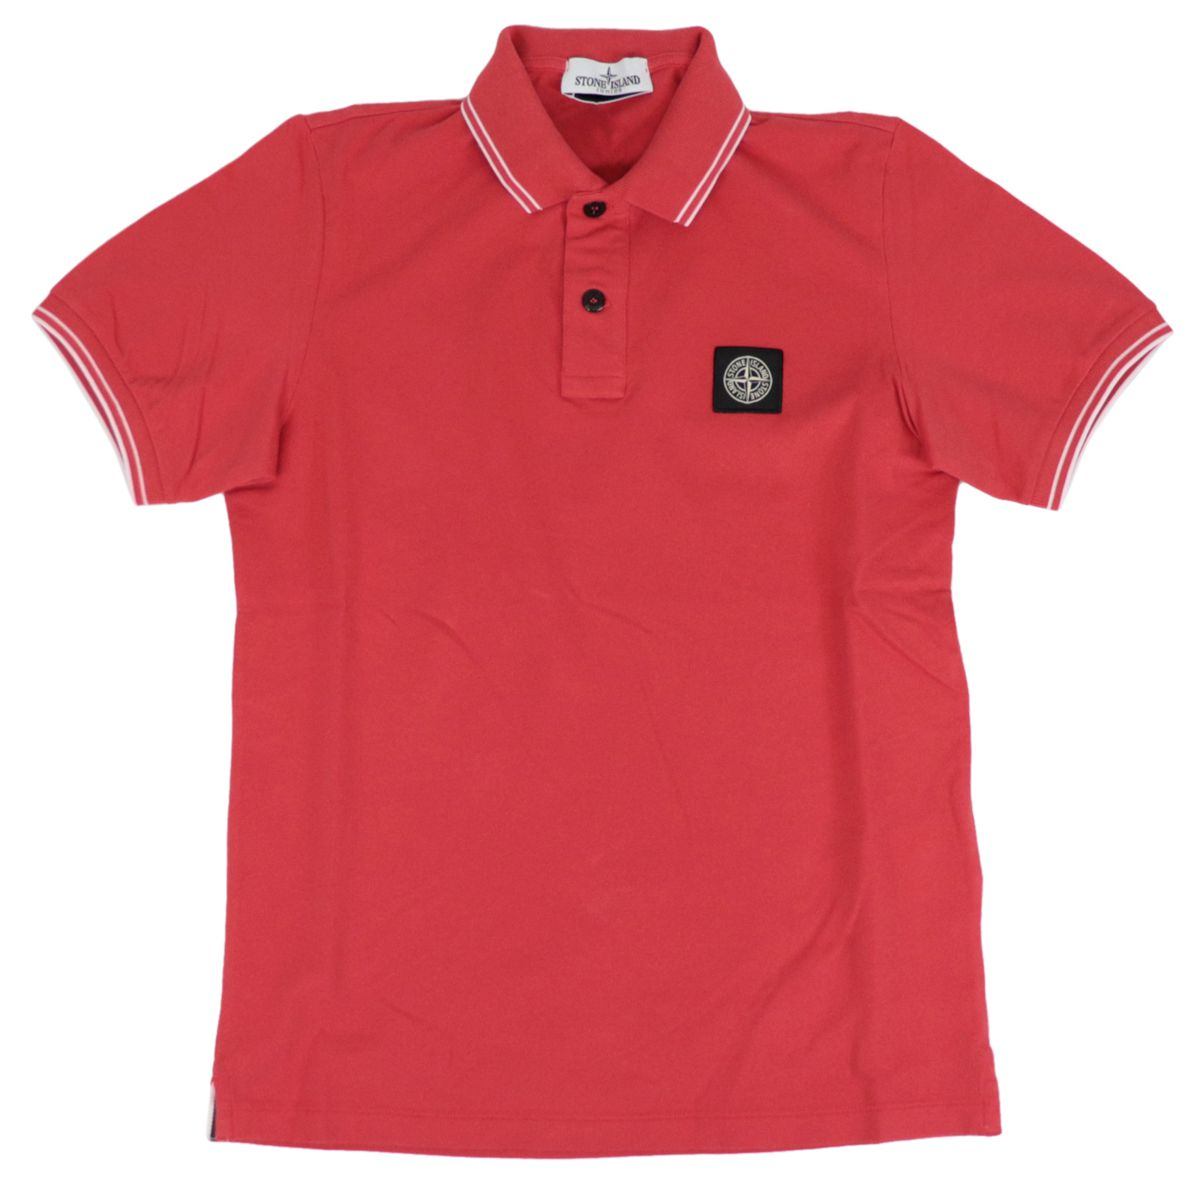 Two-button stretch cotton polo shirt with logo patch Coral STONE ISLAND JUNIOR